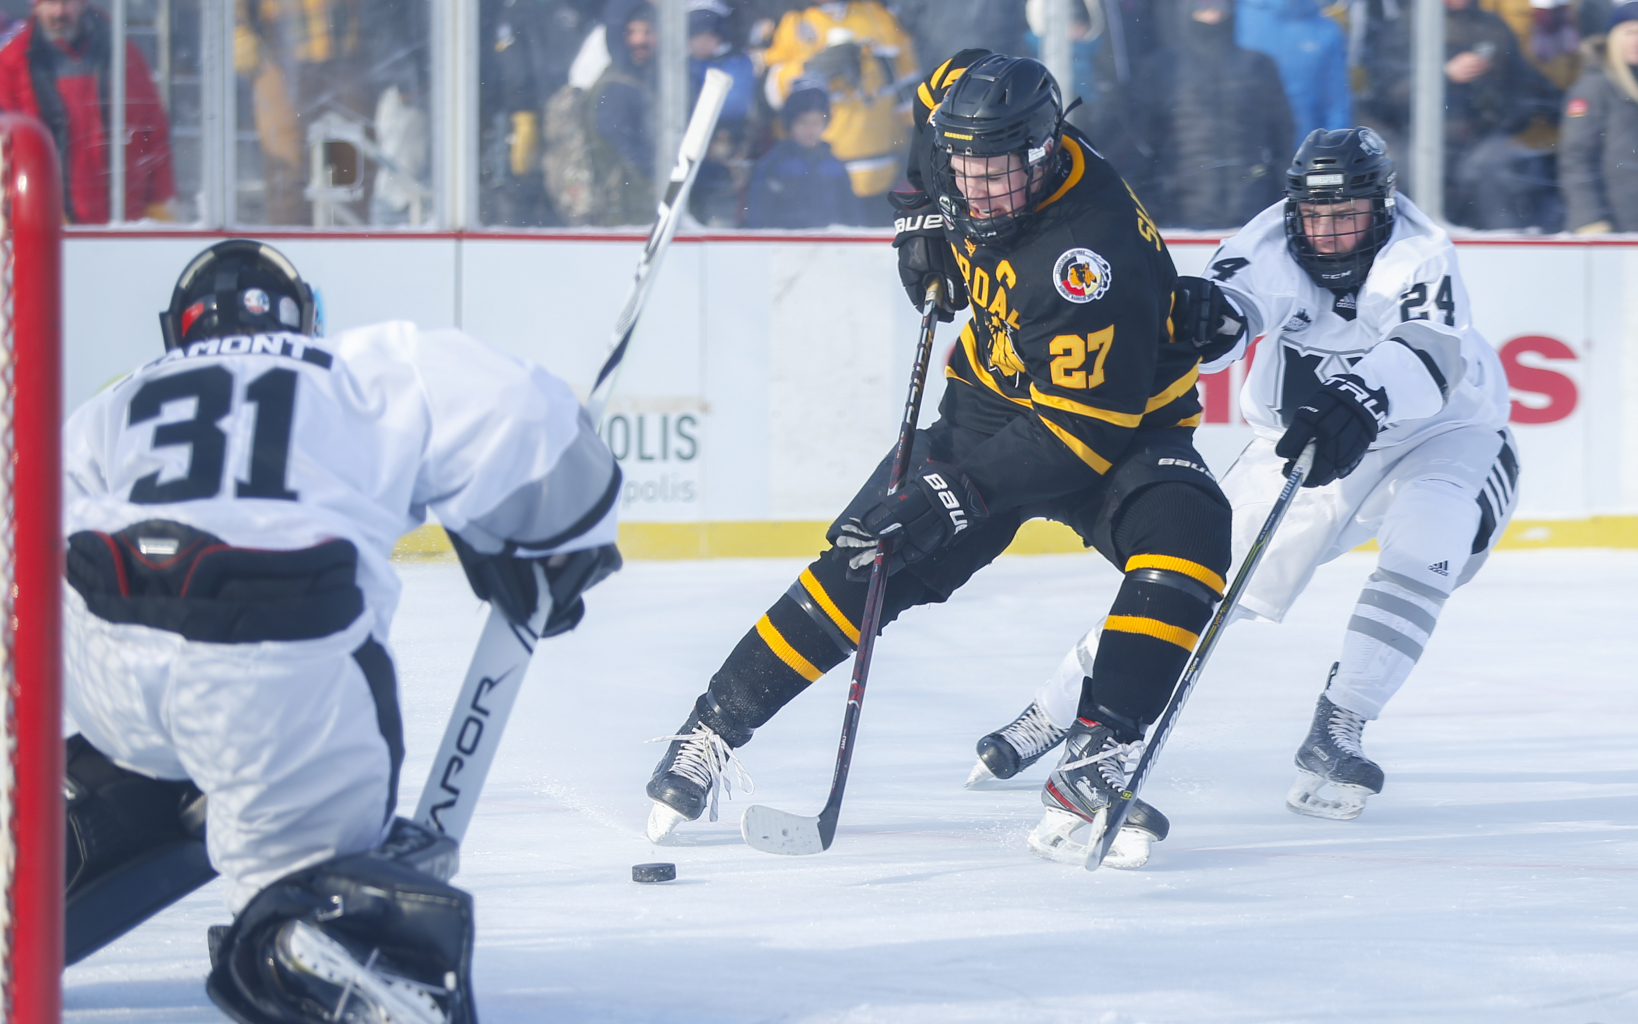 Warroad's Grant Slukynsky (27) crashes the net on a rush against Minneapolis Saturday morning. The Warriors defeated Minneapolis 5-1 in the early Hockey Day Minnesota game at Parade Stadium.  Photo by Jeff Lawler, SportsEngine